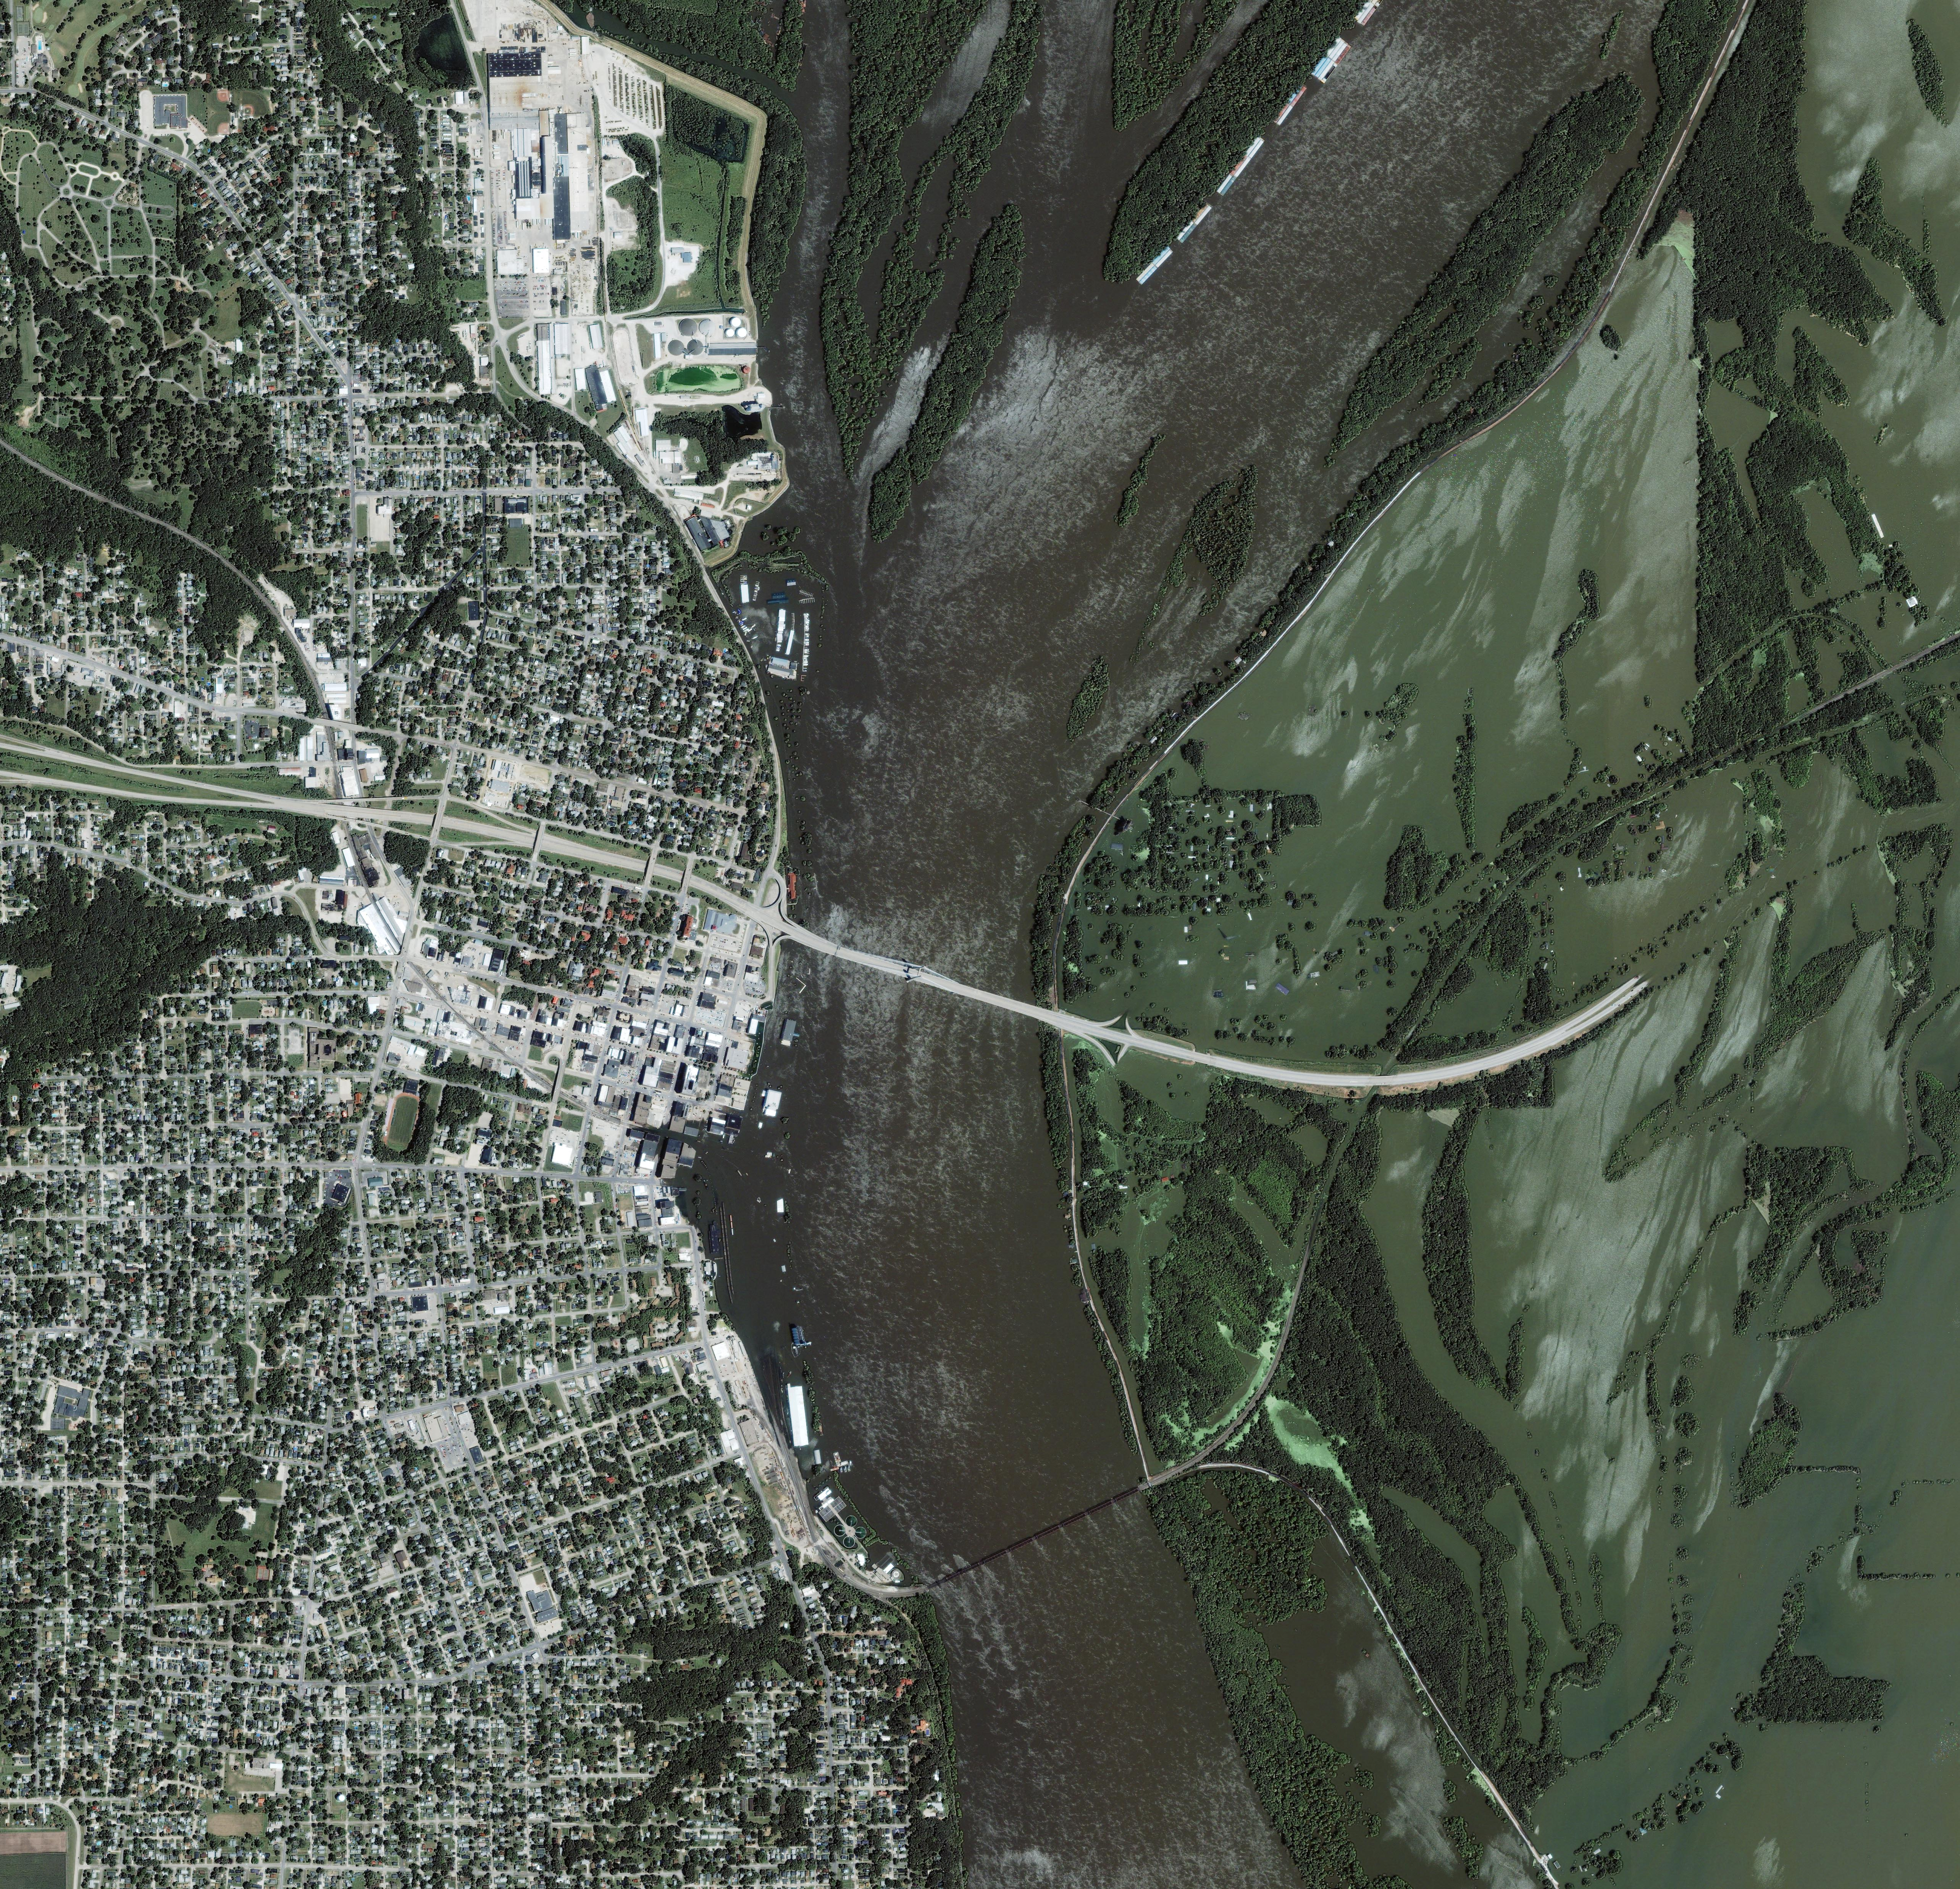 Mississippi River Floods Gulfport, Illinois - related image preview